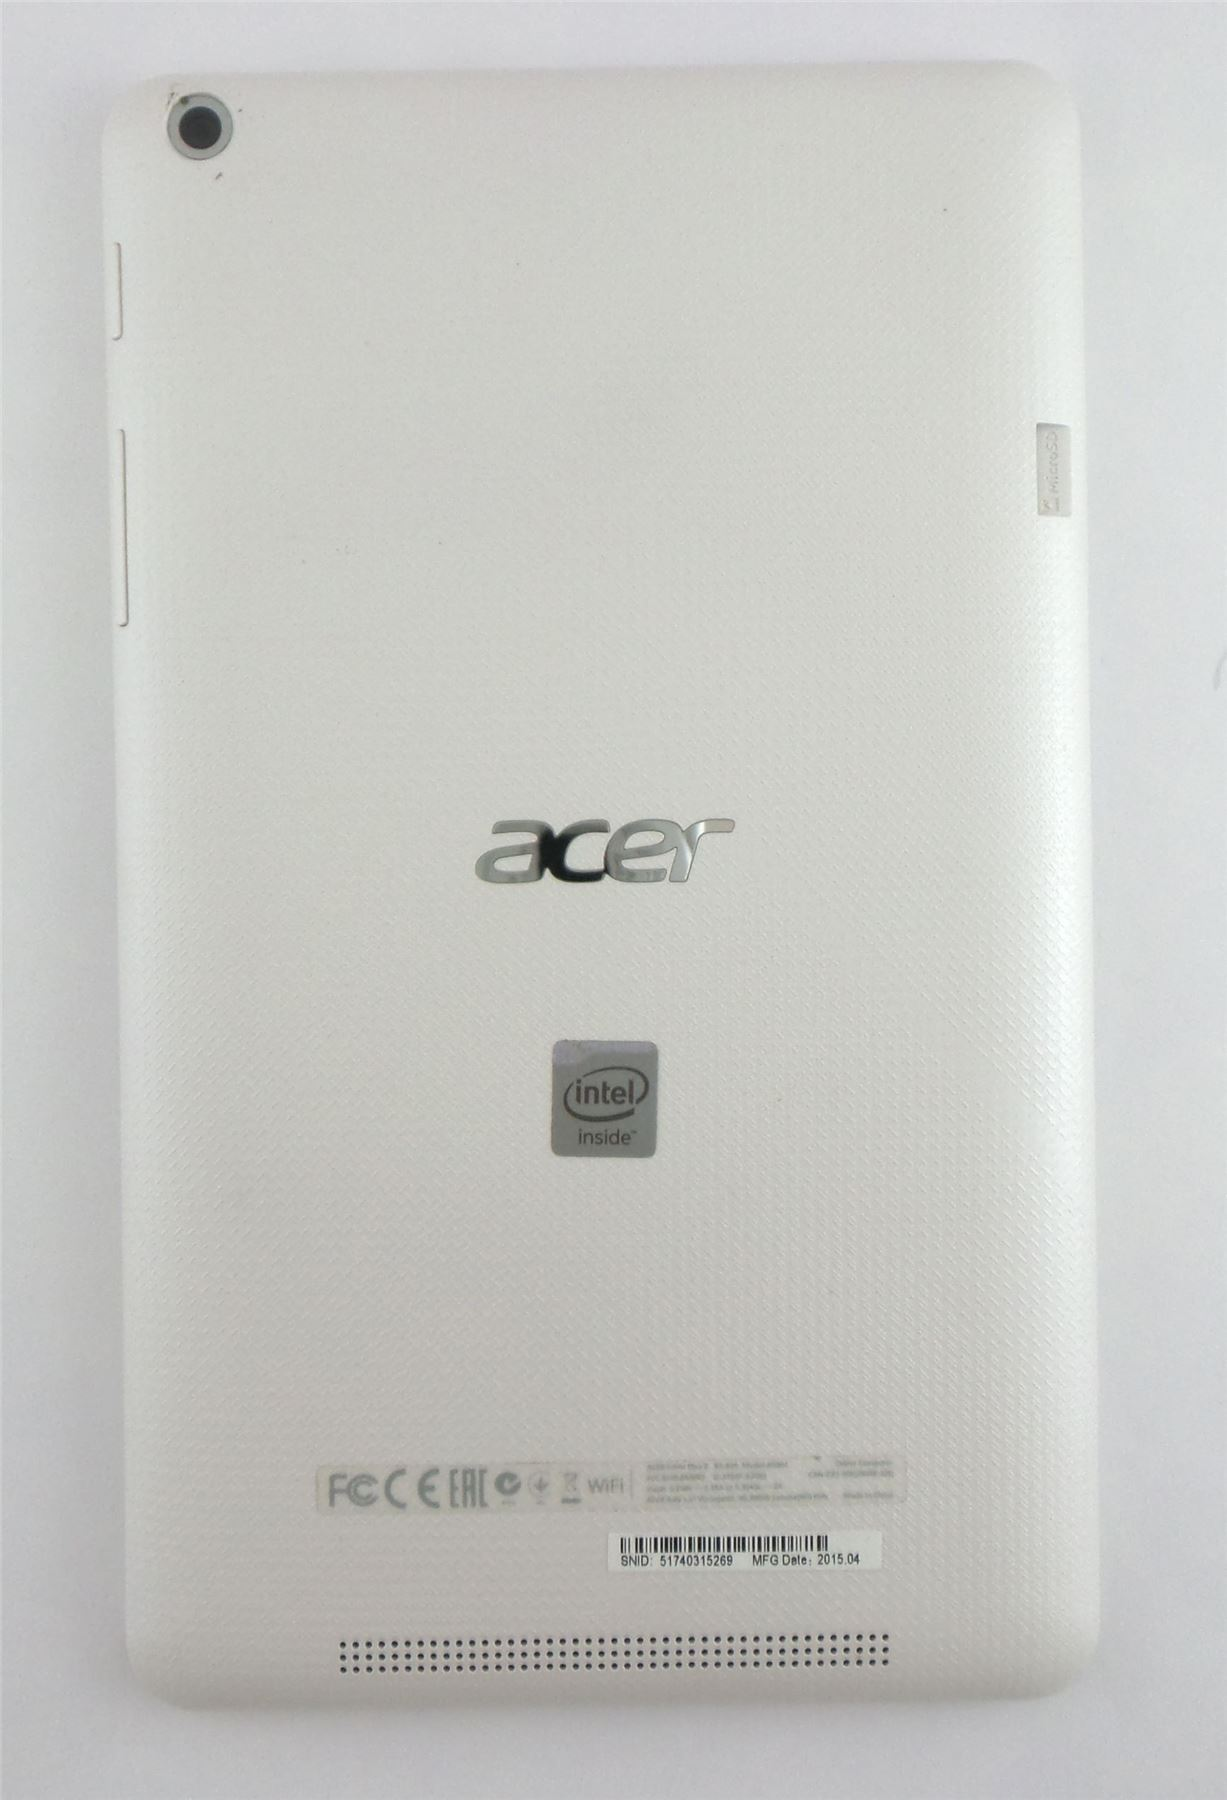 Acer-Iconia-One-8-8-034-Android-Tablet-White-16GB-Wi-Fi-B1-820-16FX-FPO thumbnail 3